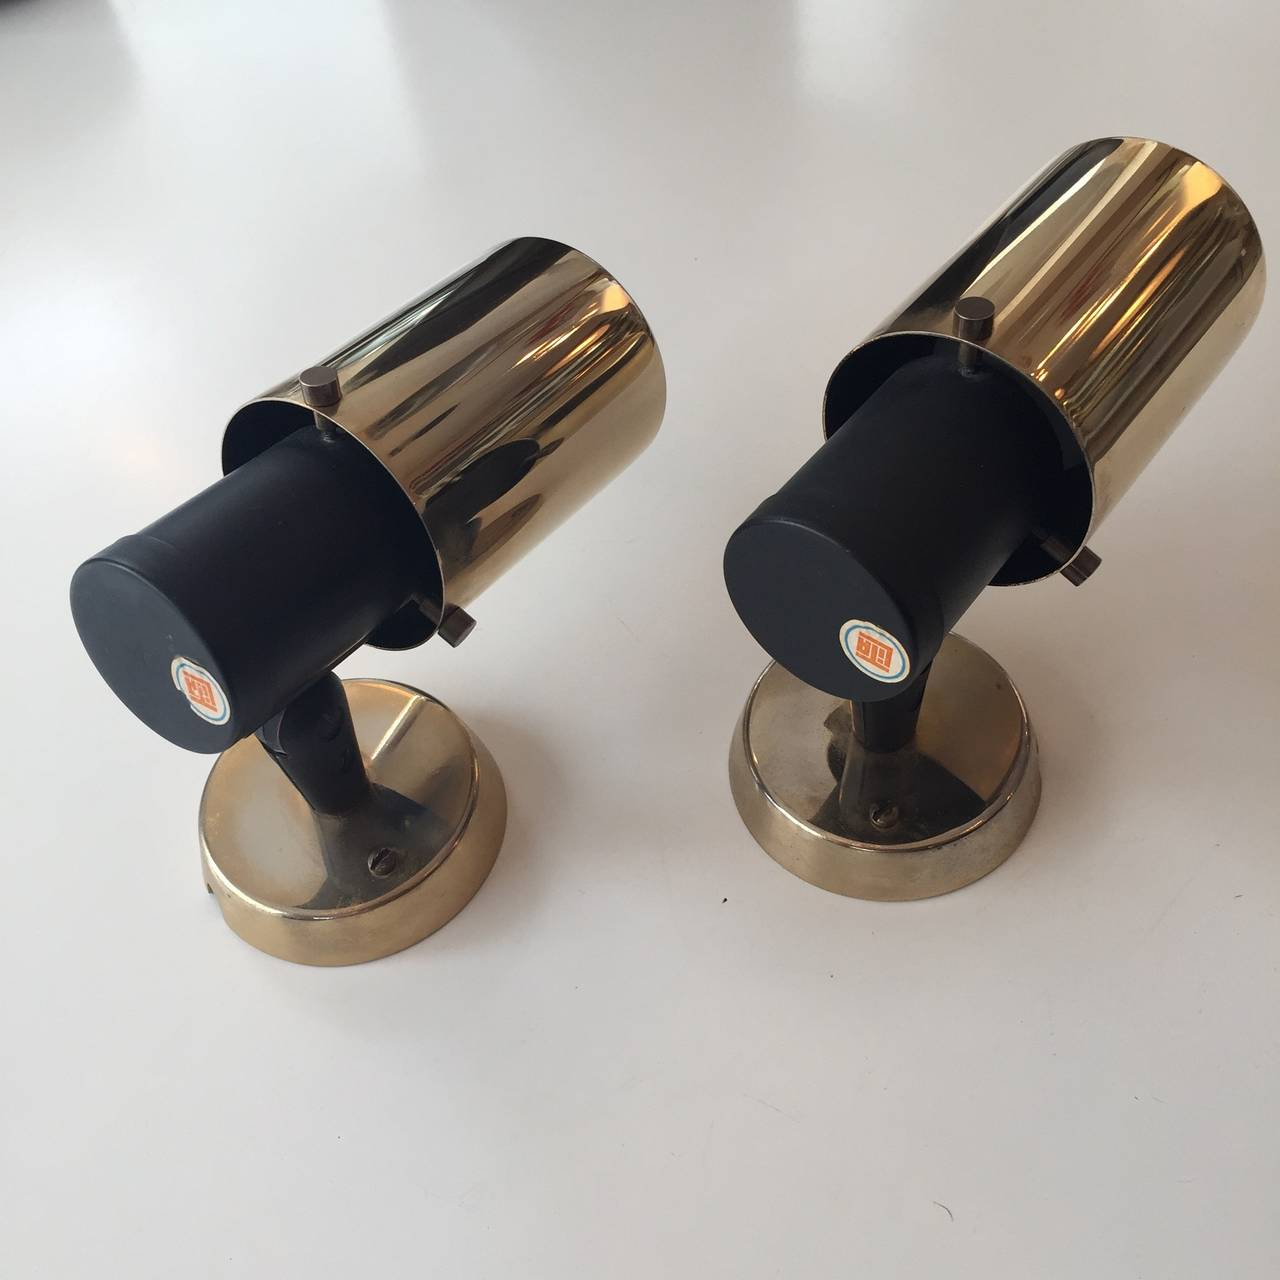 Mid-Century Modern Pair of Jacques Biny Wall Lights for Lita from the 1950s For Sale